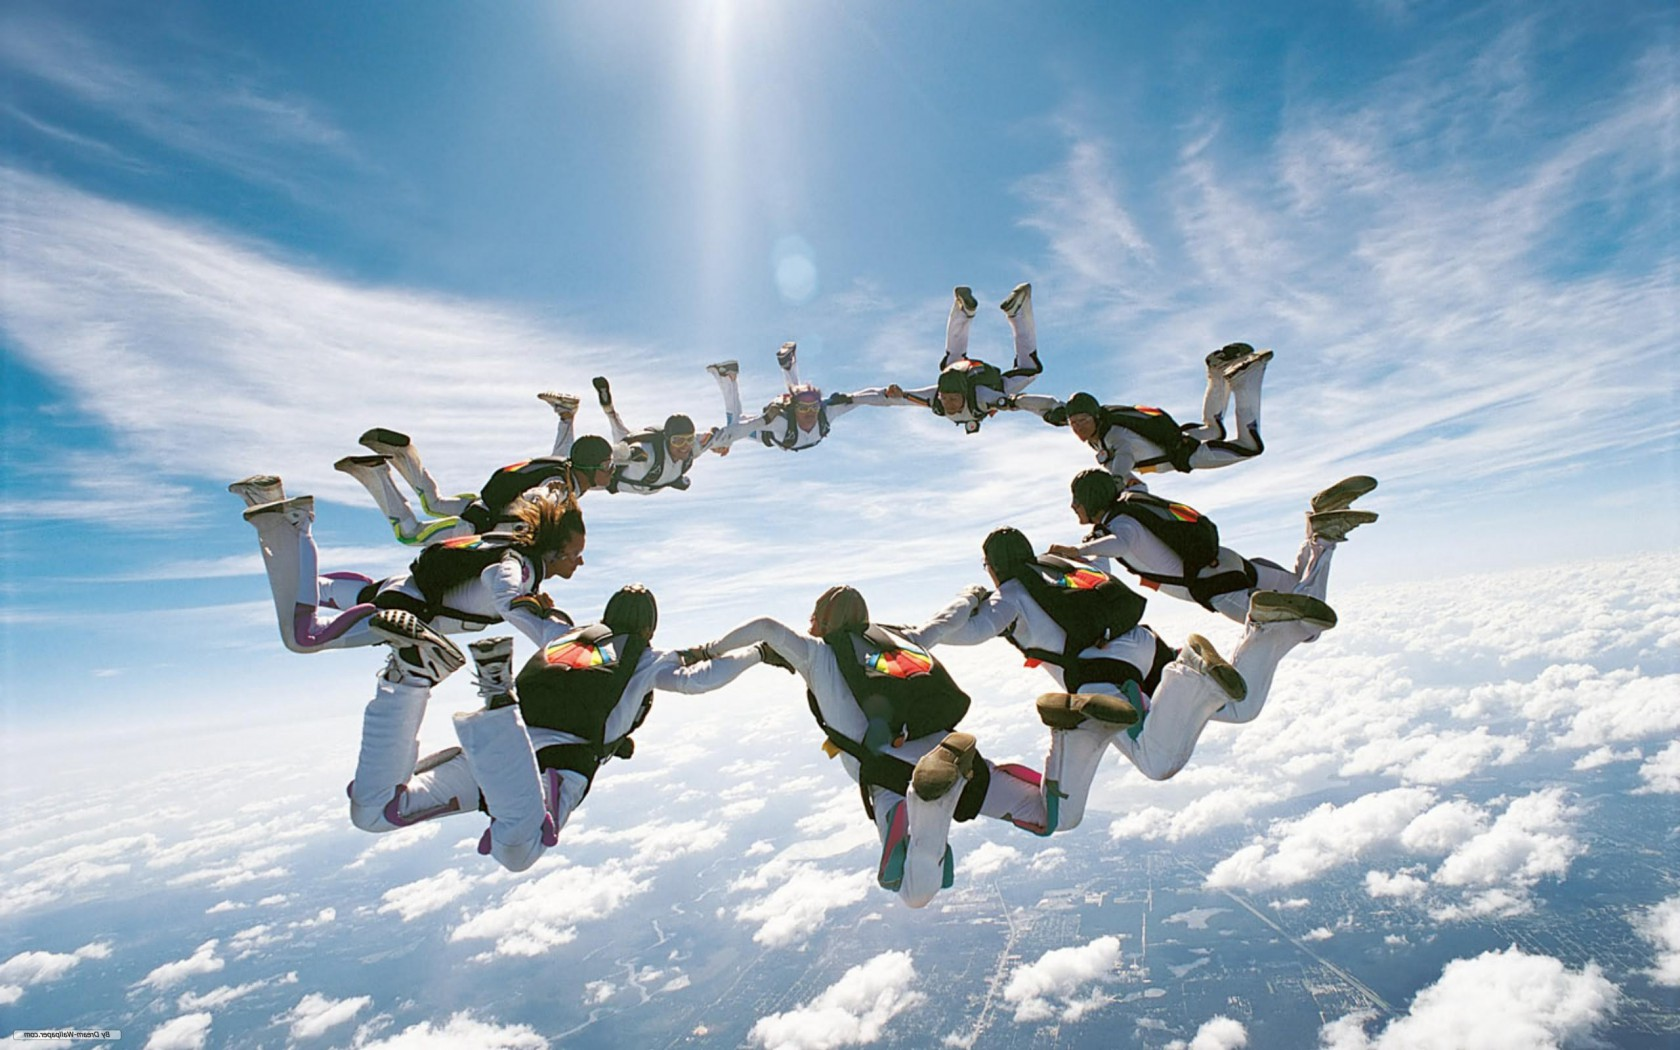 Best Sights For Skydiving In The World - Tell Me Nothing